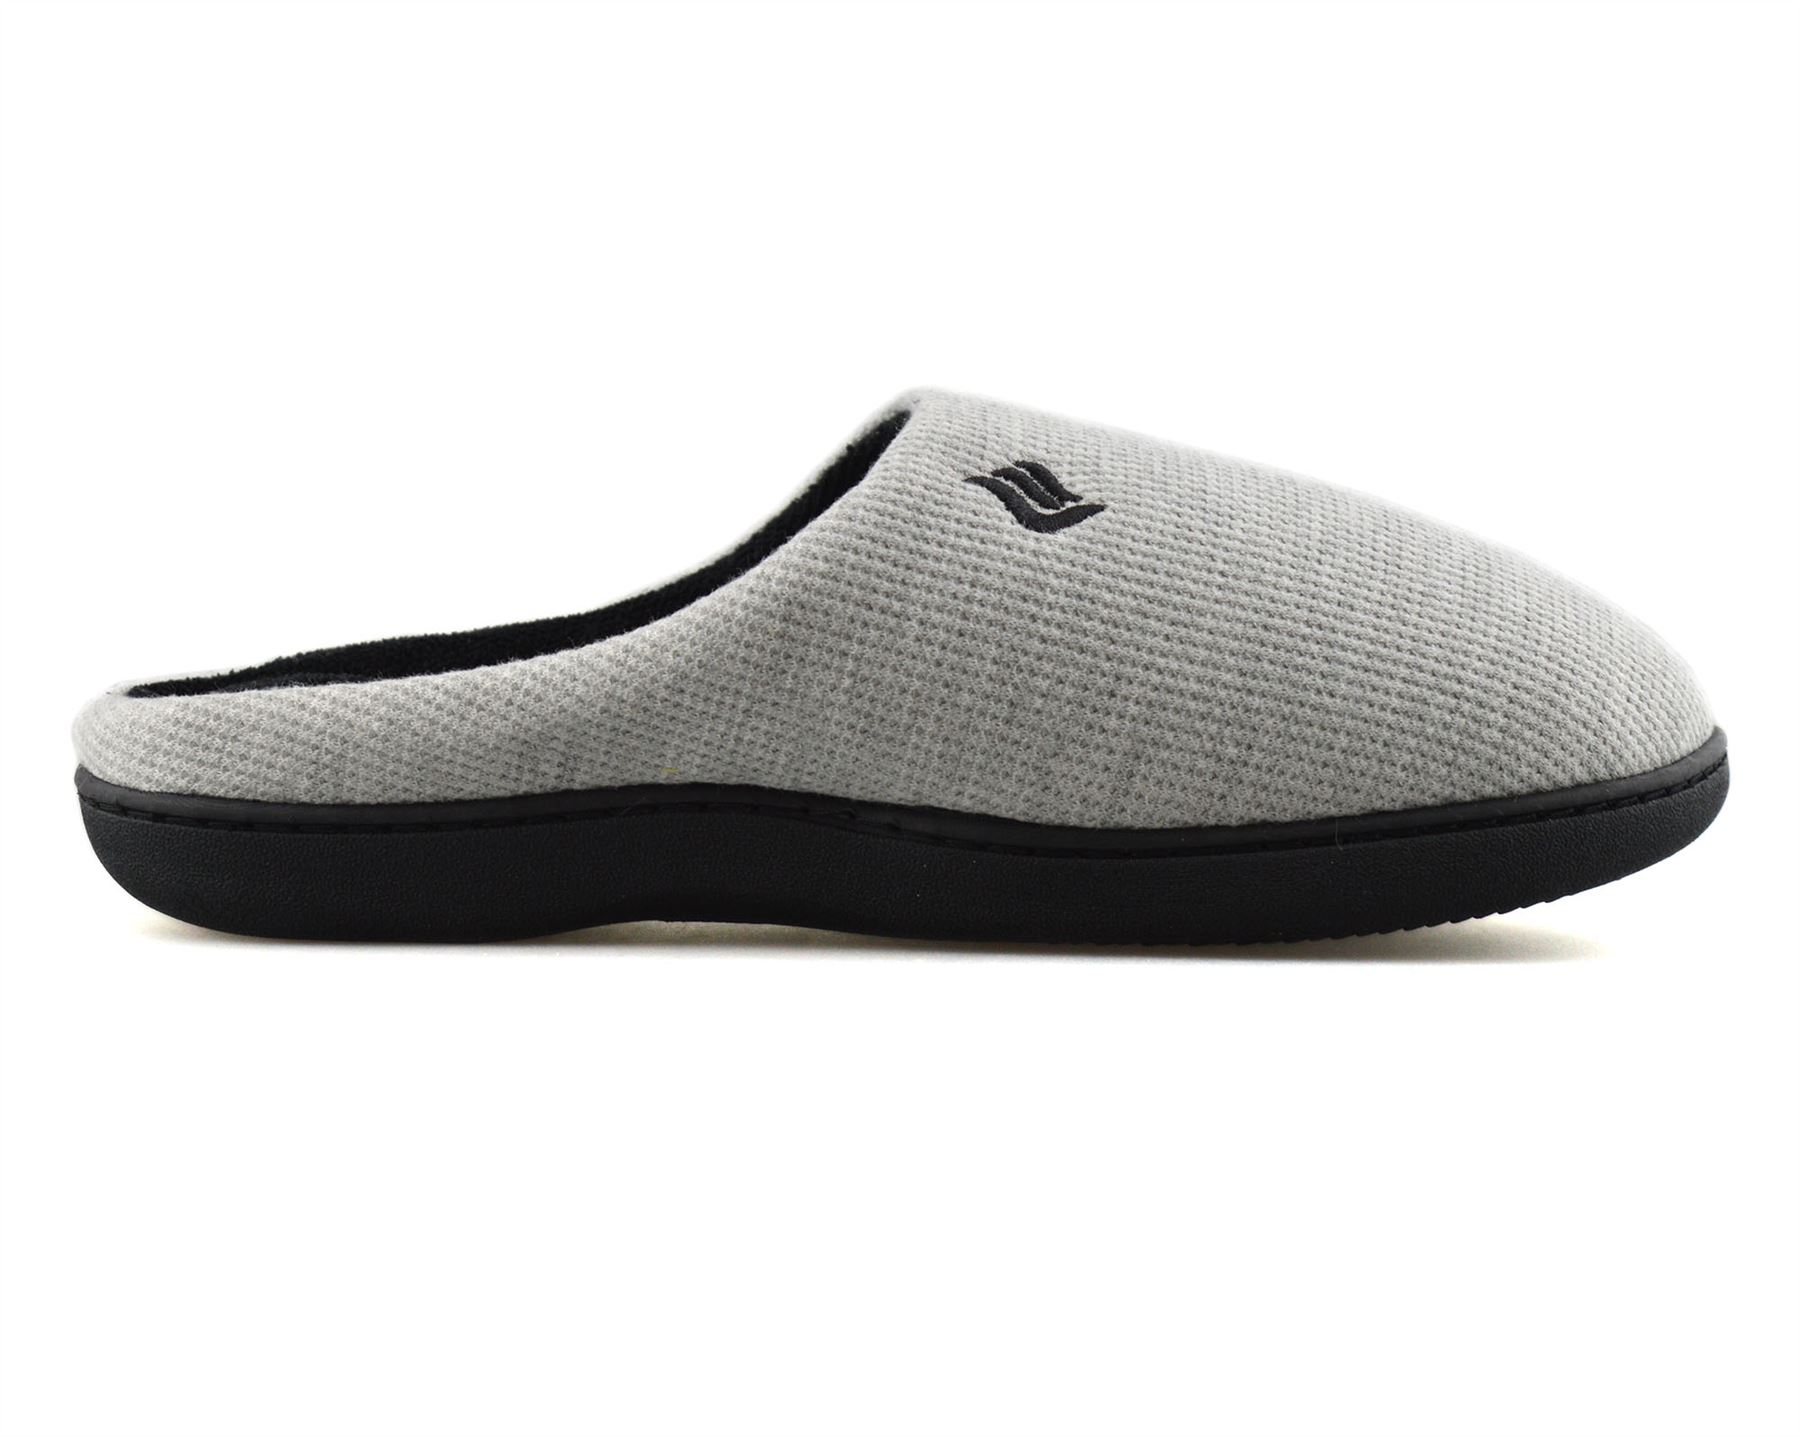 Mens-Memory-Foam-Warm-Fleece-Lined-Cotton-Slippers-Slip-On-Clog-Mules-Shoes-Size thumbnail 29